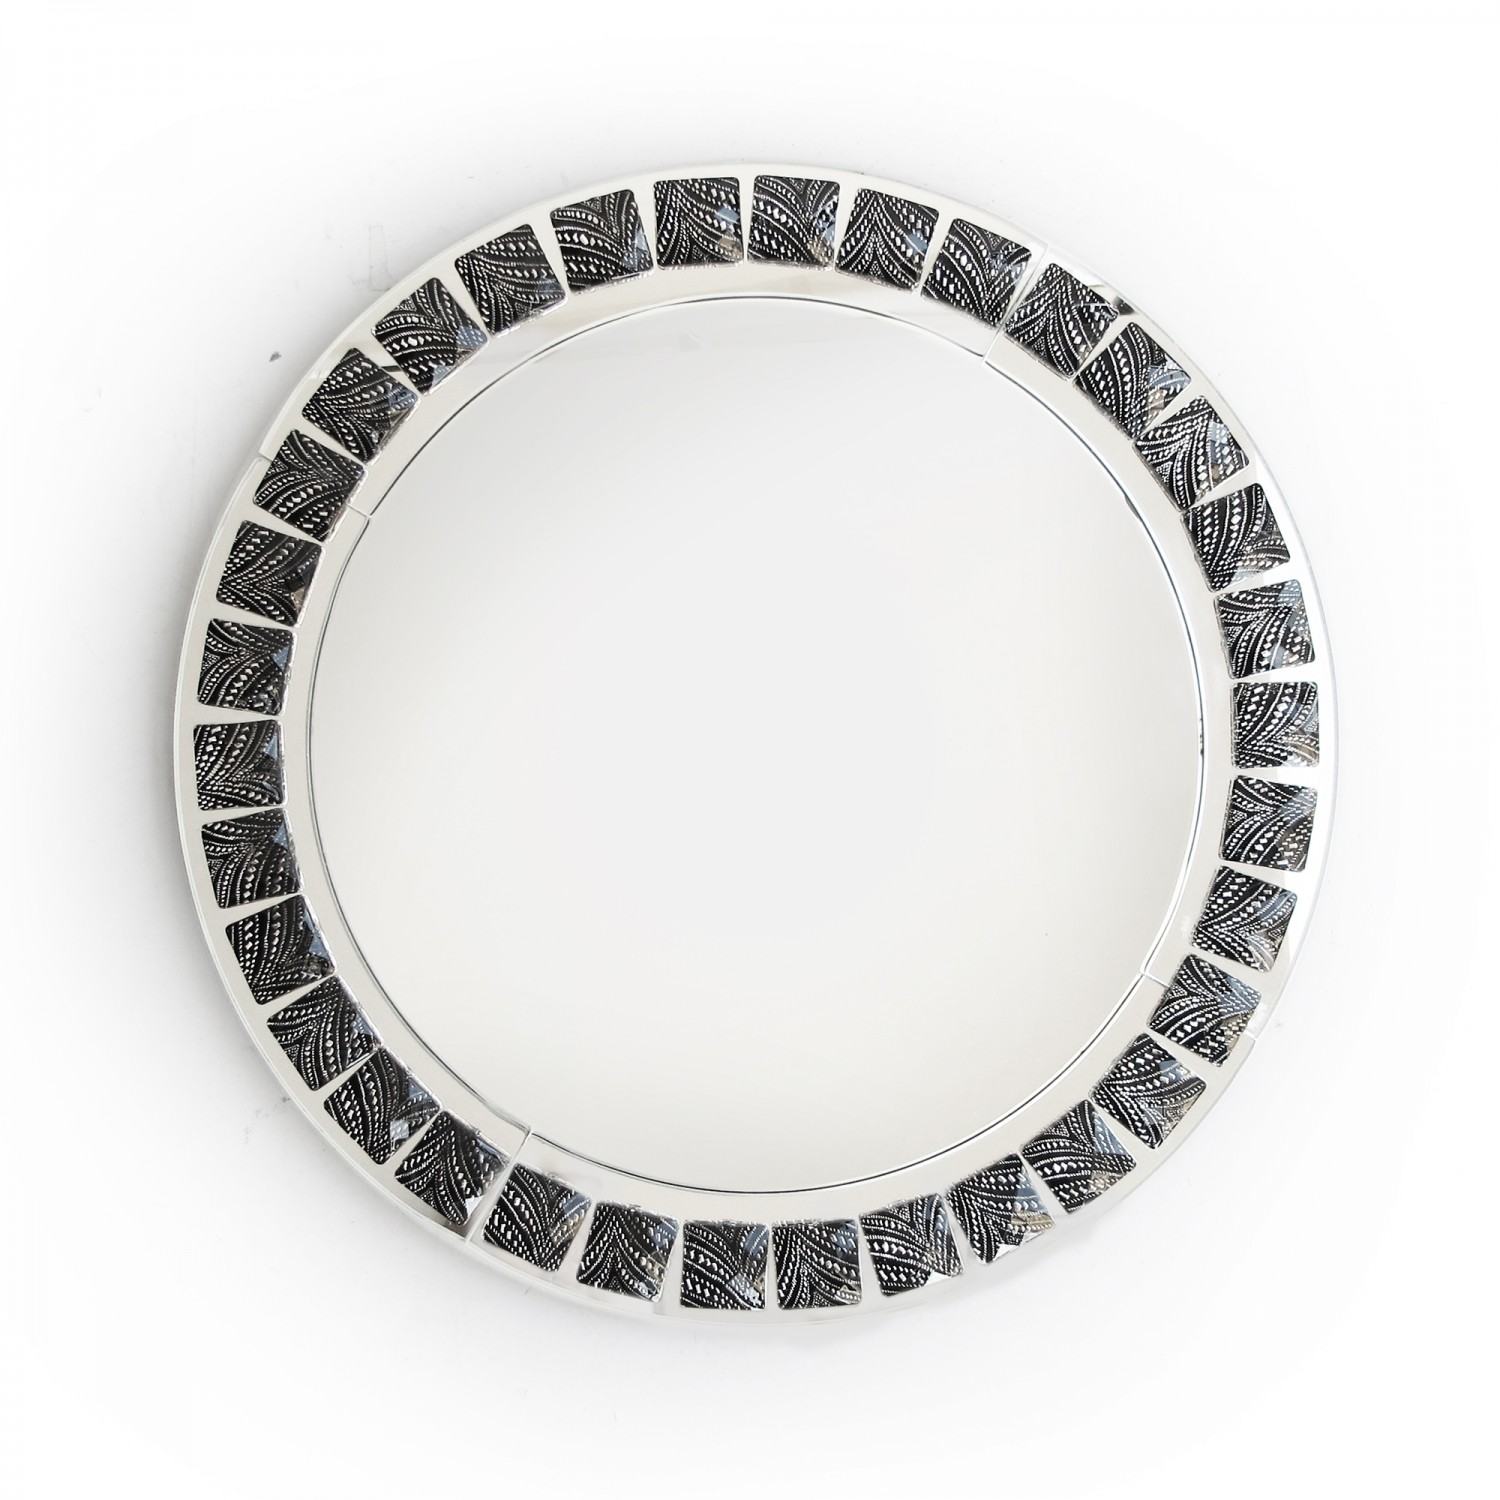 The Jay Companies 1332639 Round Black and White Beaded Glass Charger Plate 13""